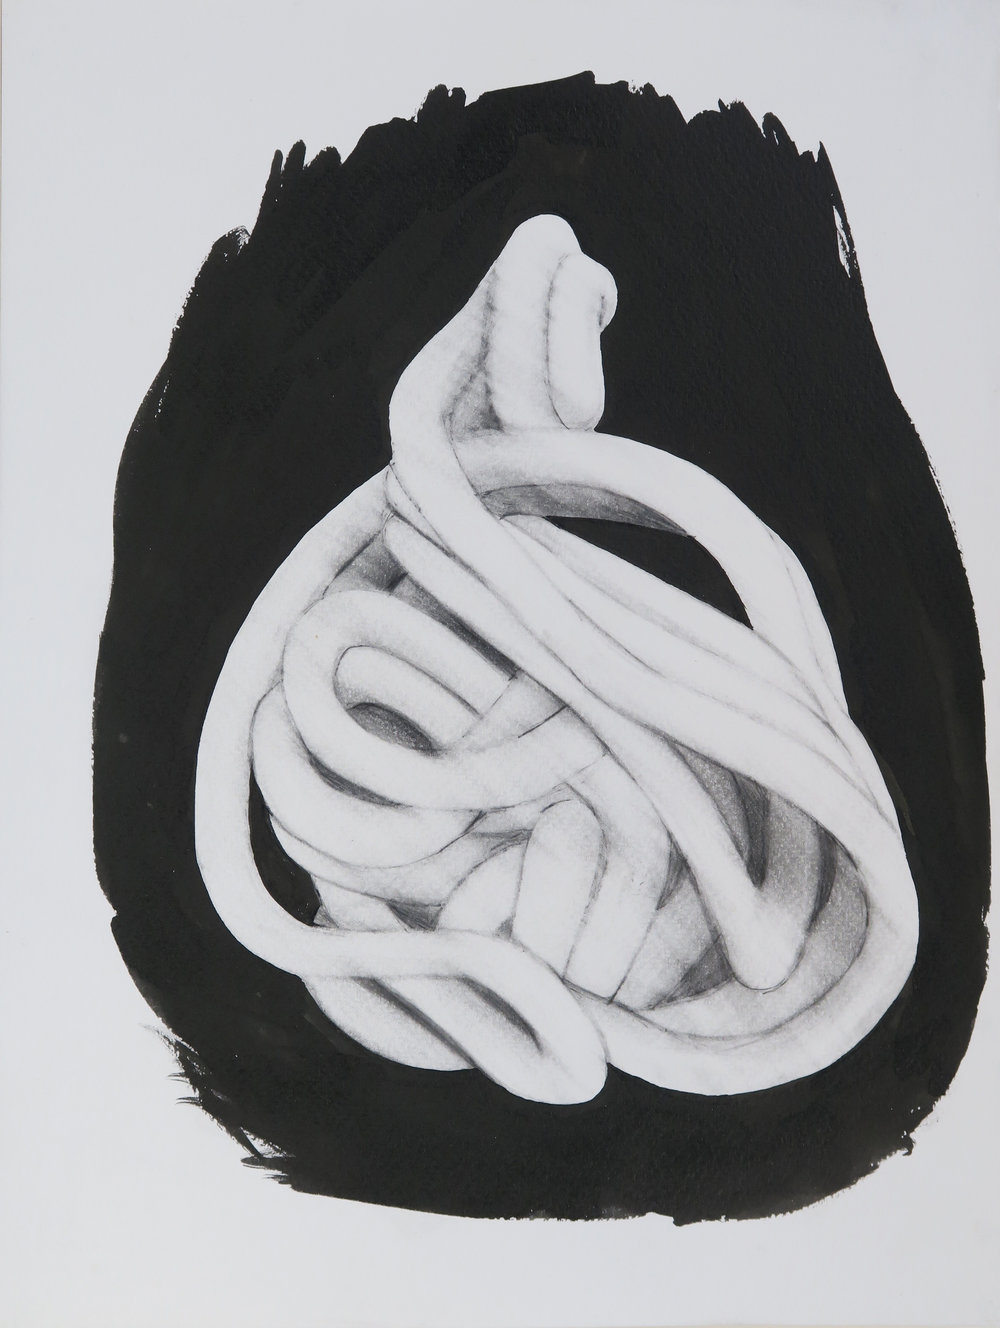 Sculpture drawing XVI, 2013, pencil & ink on paper, 32x24cm